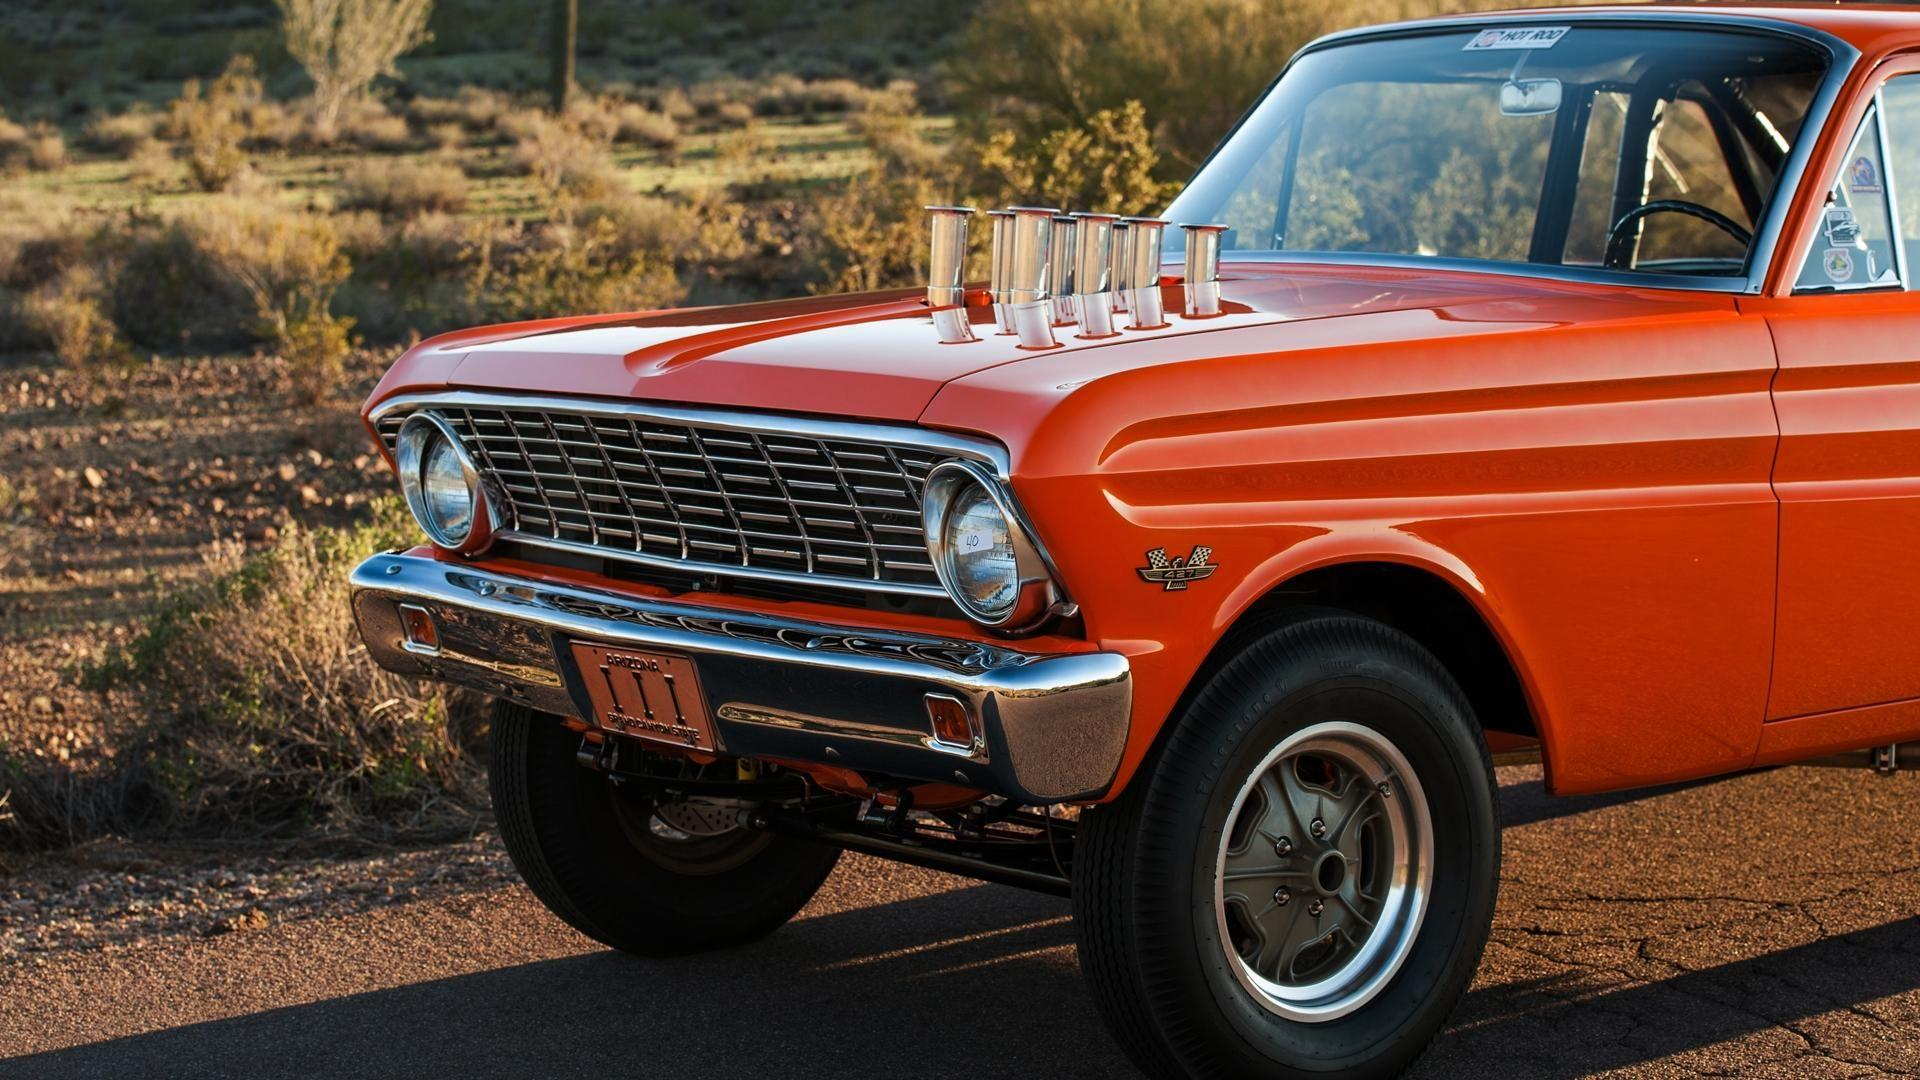 1964 Ford Falcon Wallpapers HD Download